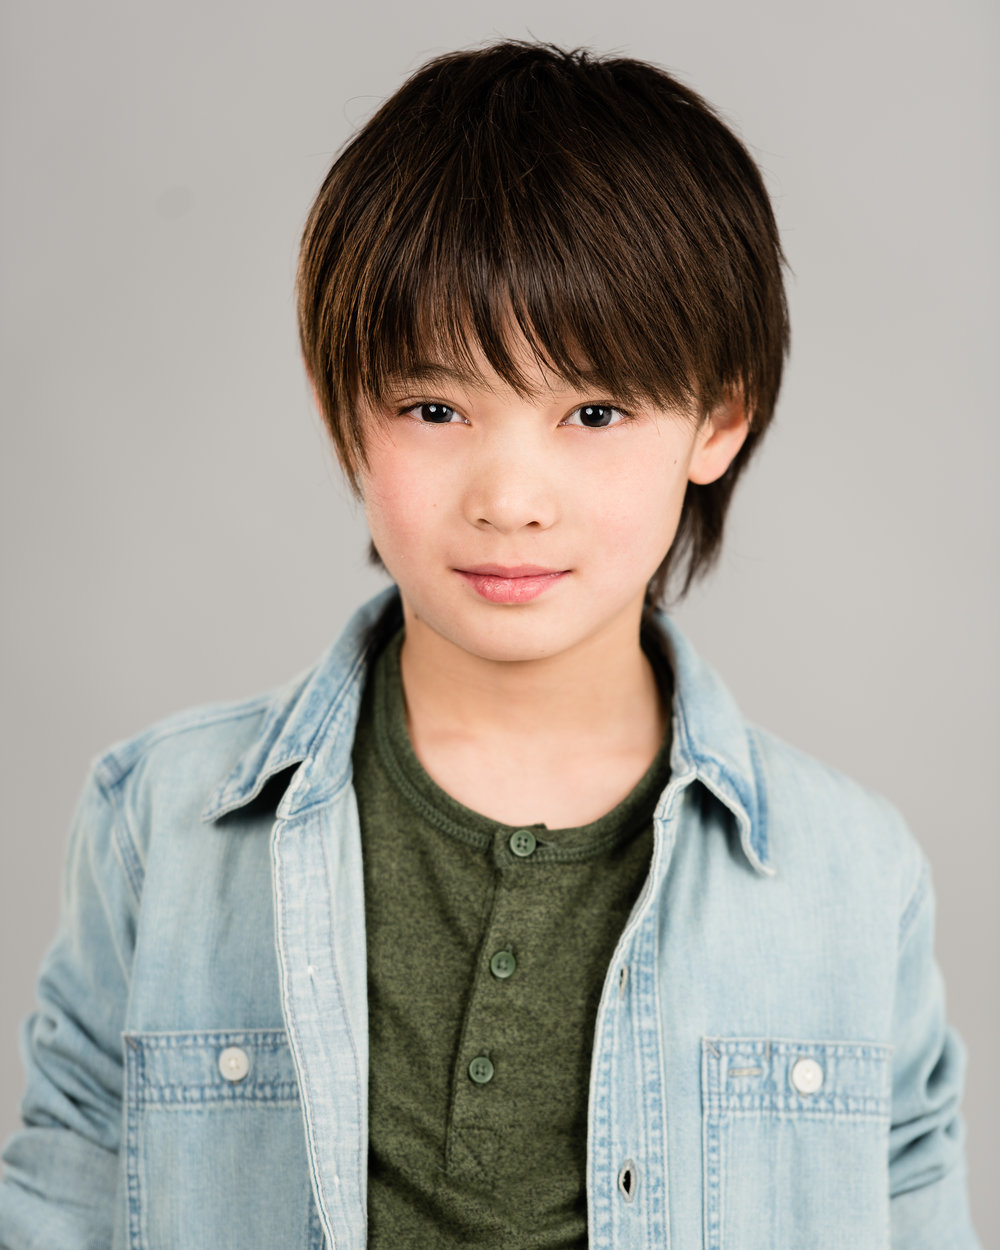 ChildrenHeadshots018.jpg